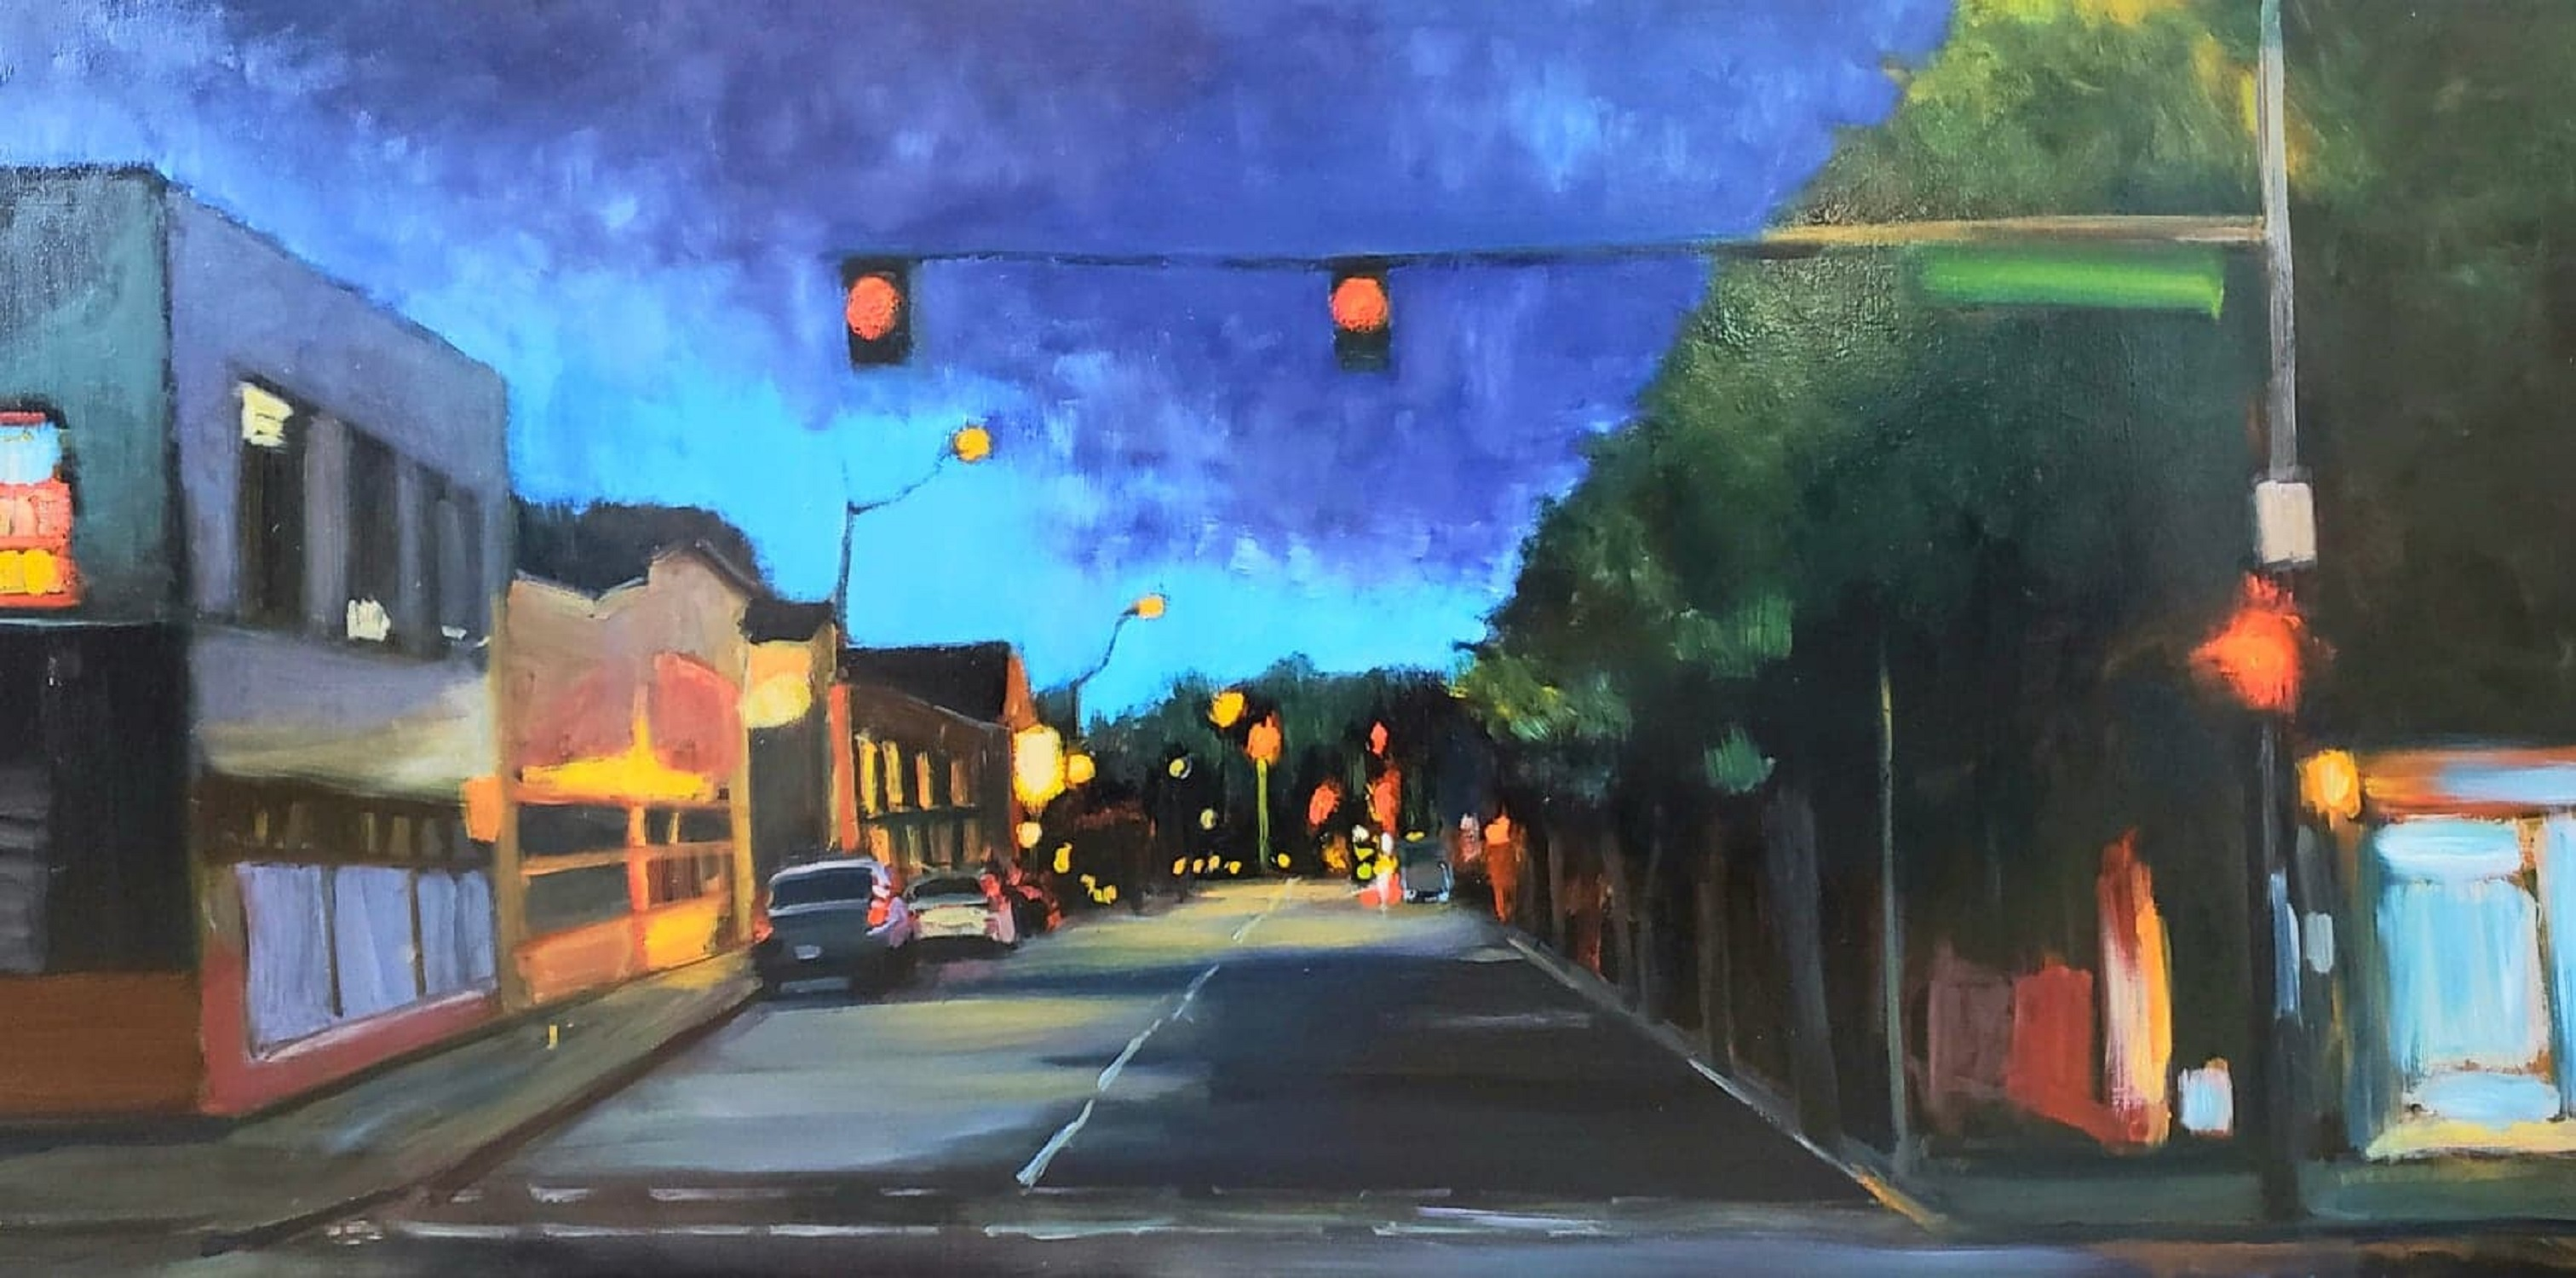 "Our Town - 24x48"" - $1800 - SOLD"